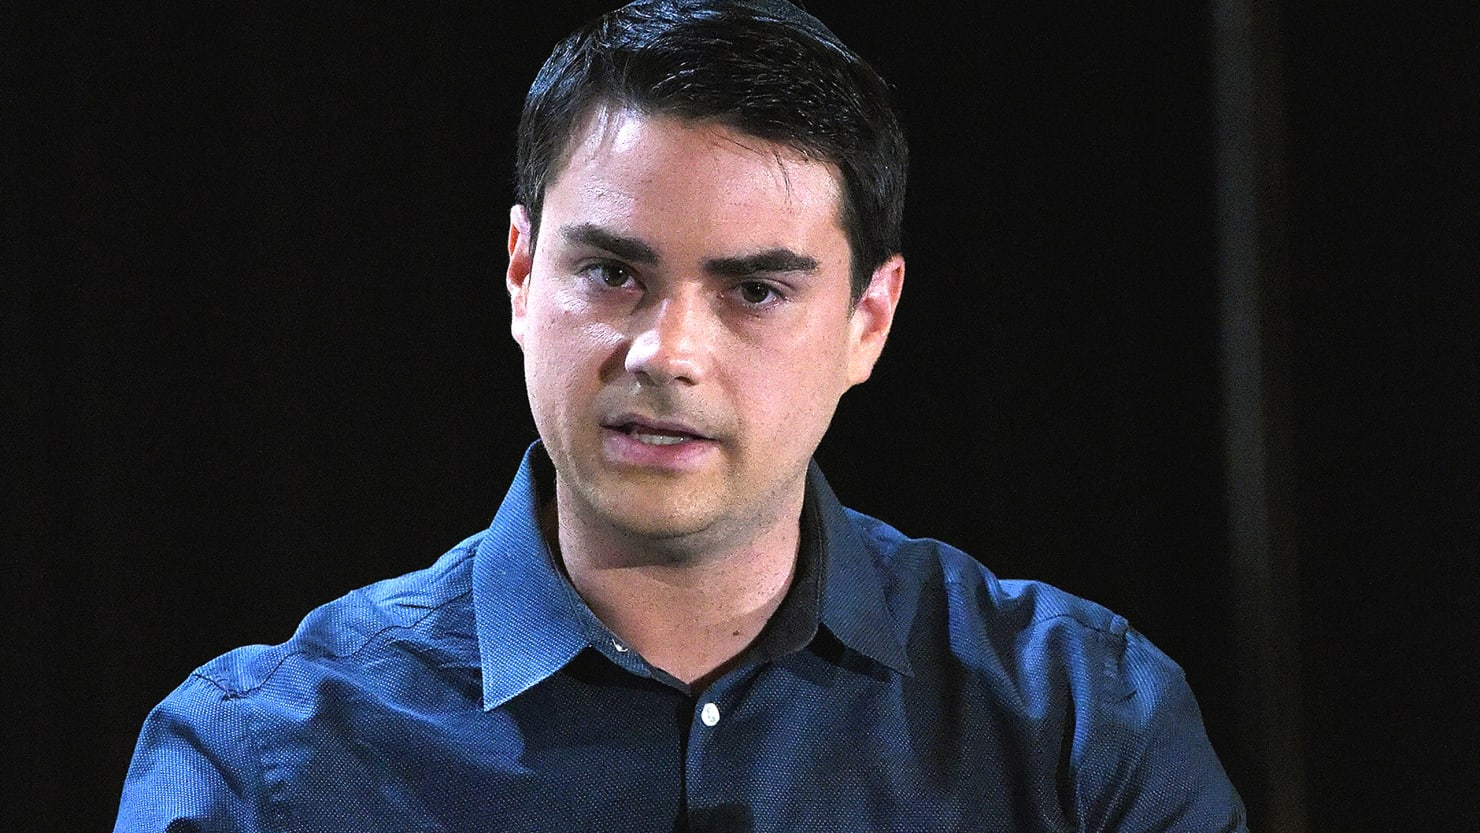 Ben Shapiro Family Photo, Wife, Age, Height, Parents, Net Worth